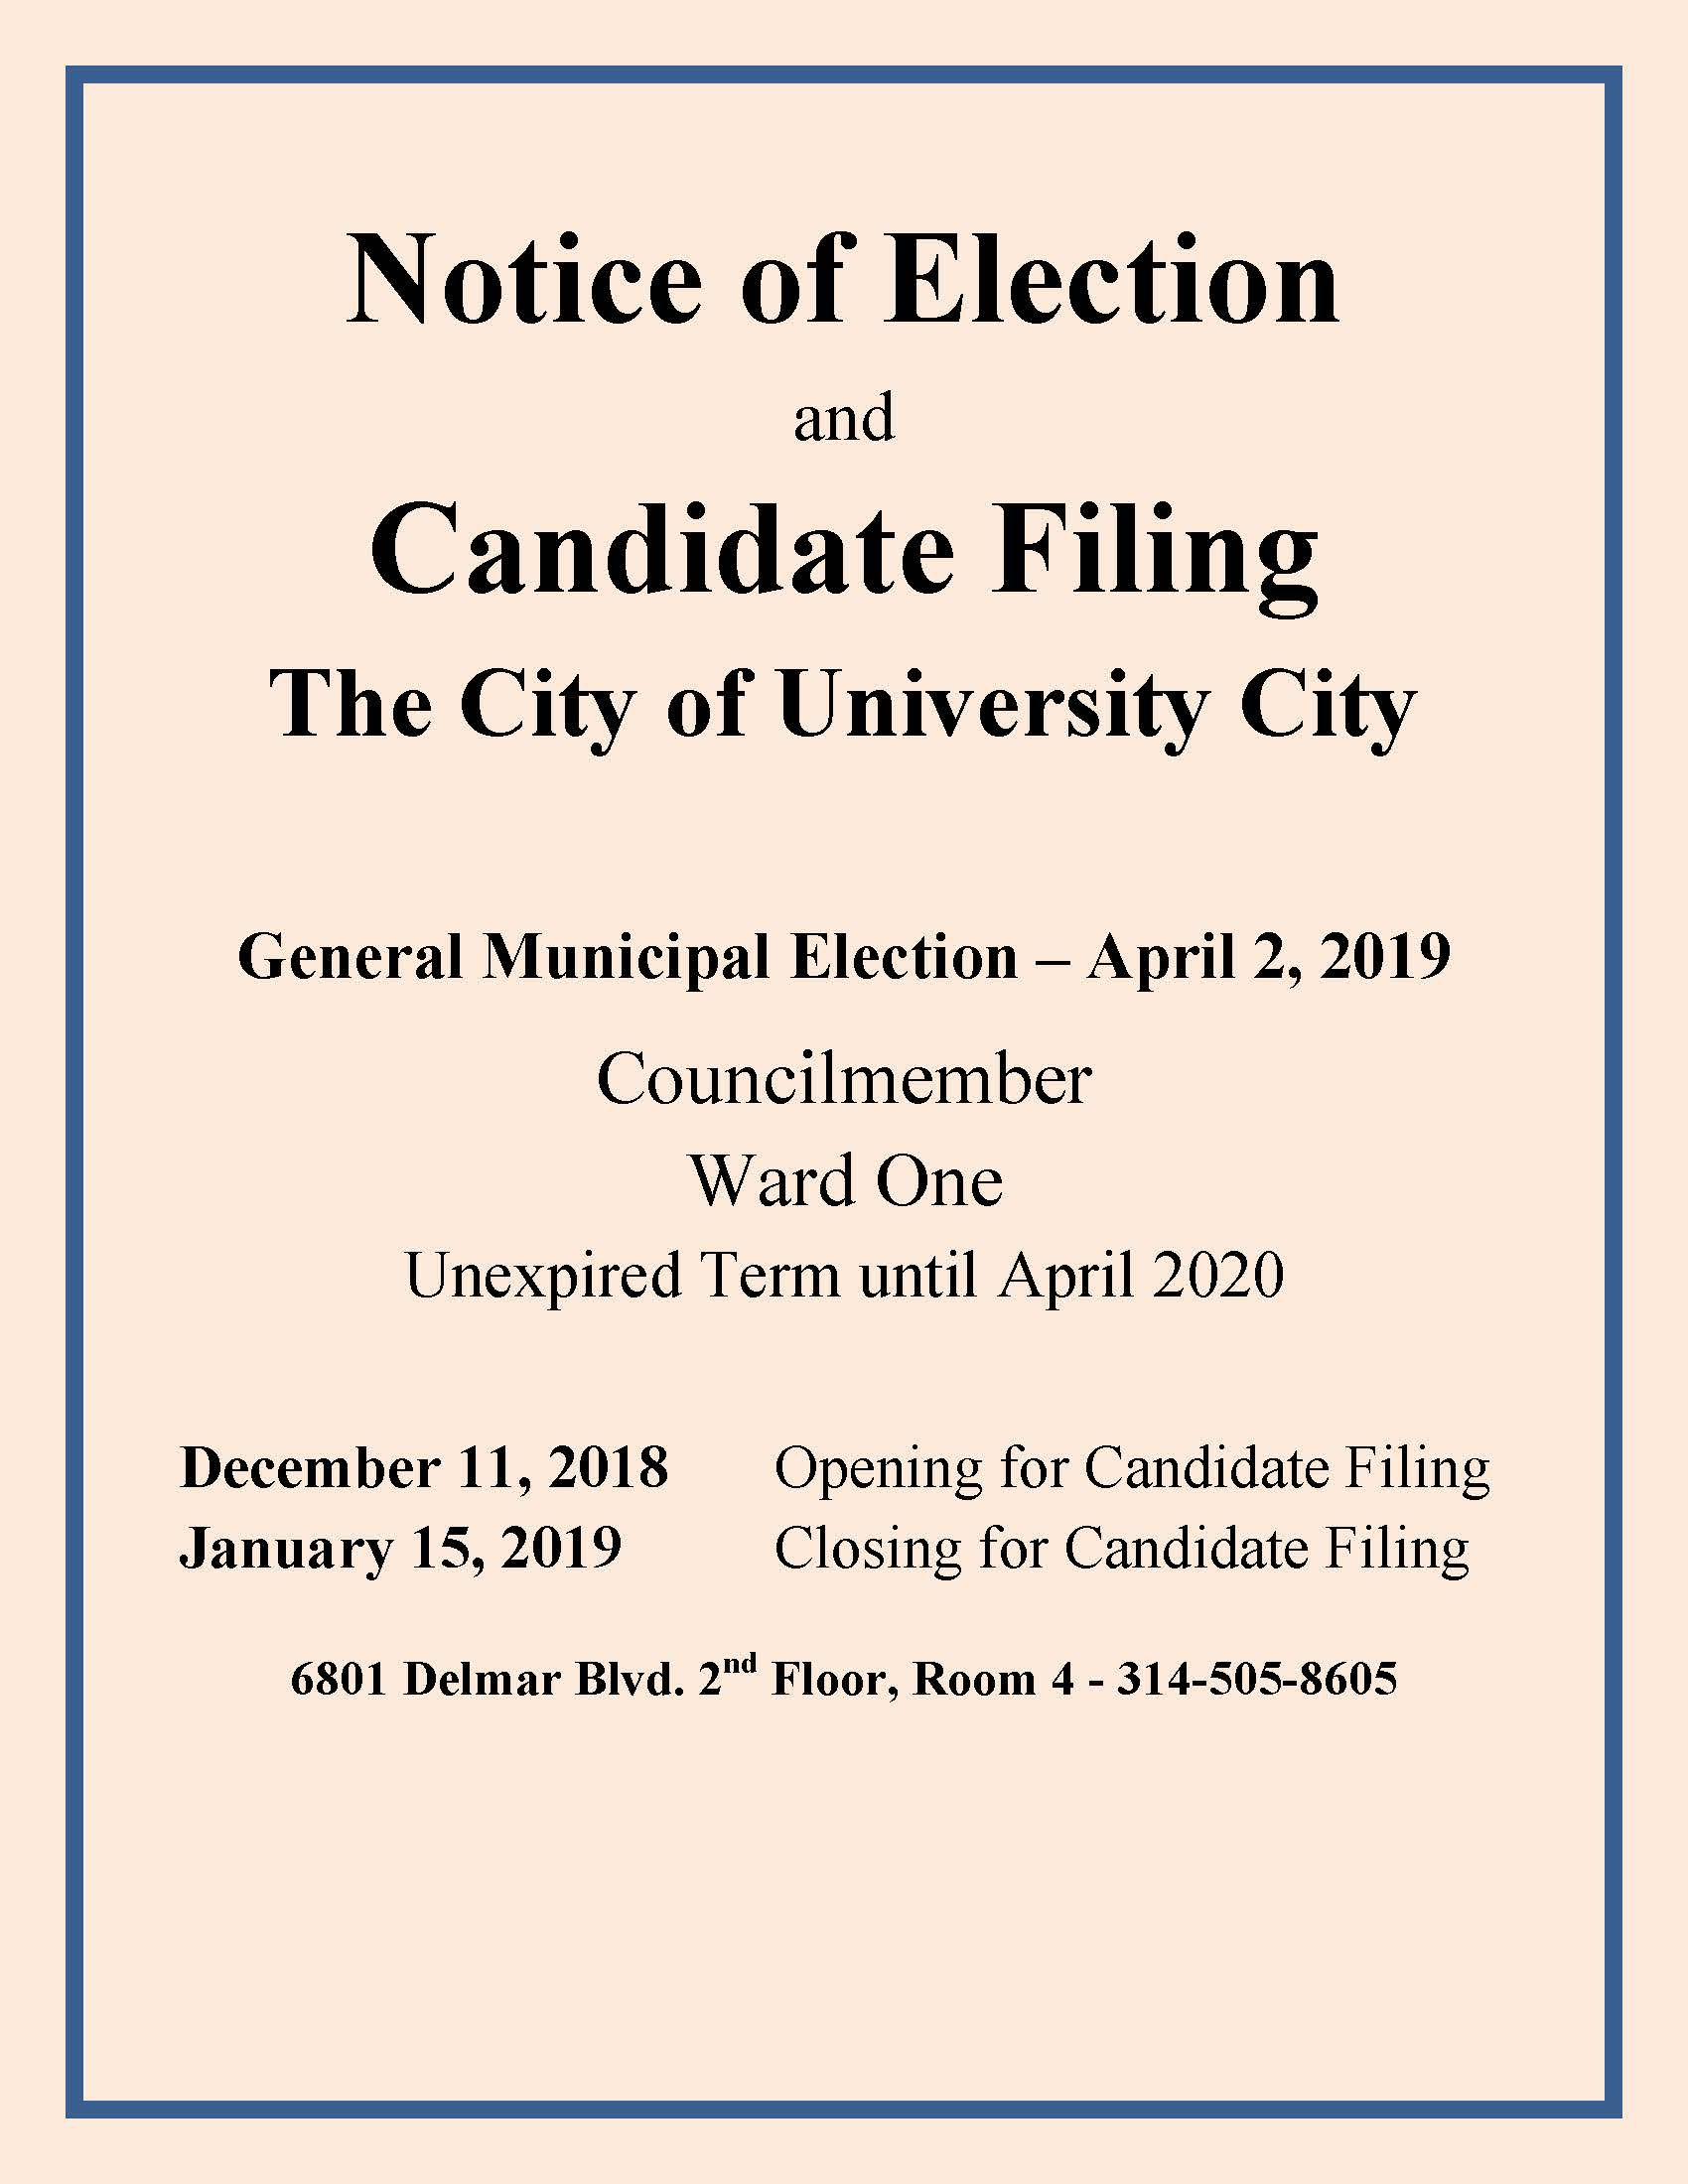 Notice of Election and Candidate Filing